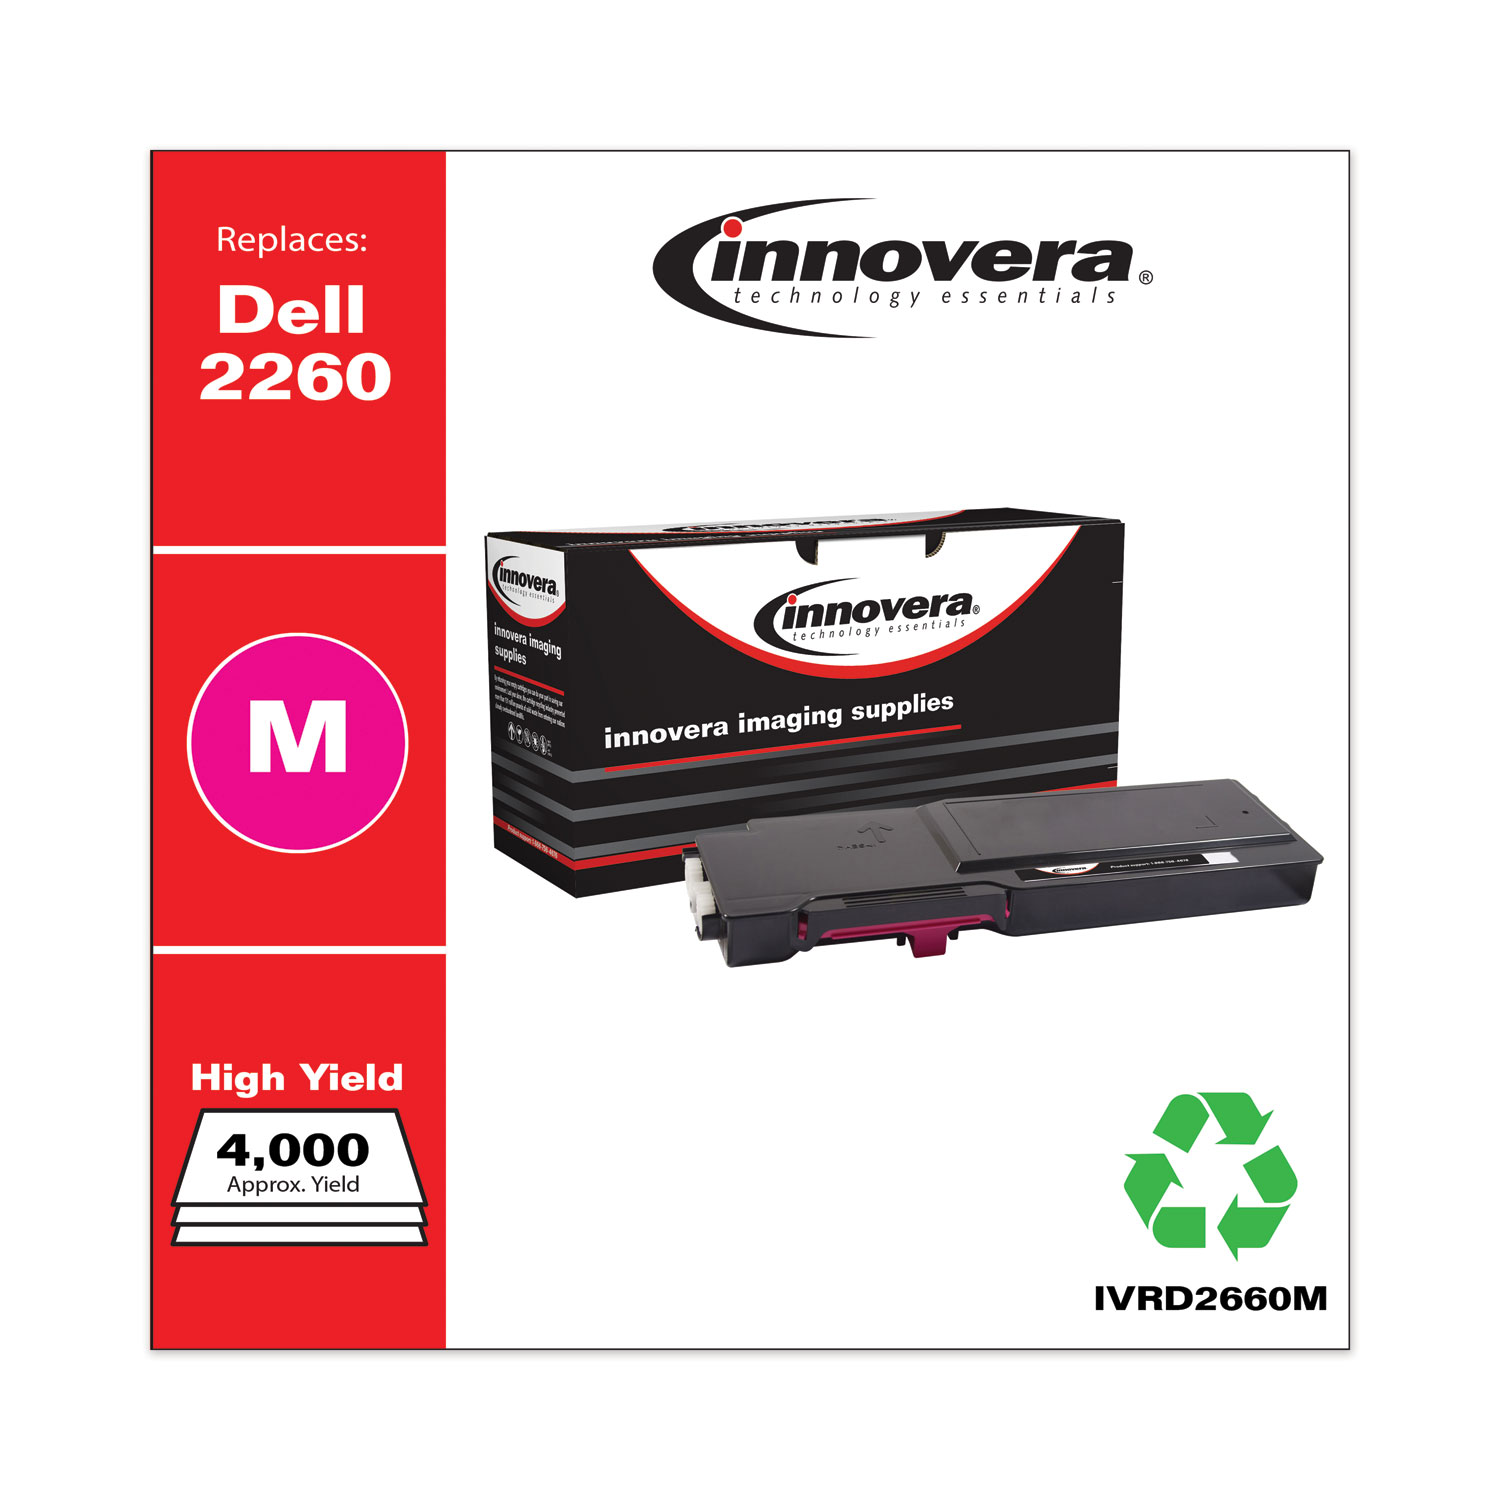 Remanufactured Magenta High-Yield Toner, Replacement for Dell D2660 (593-BBBS), 4,000 Page-Yield IVRD2660M